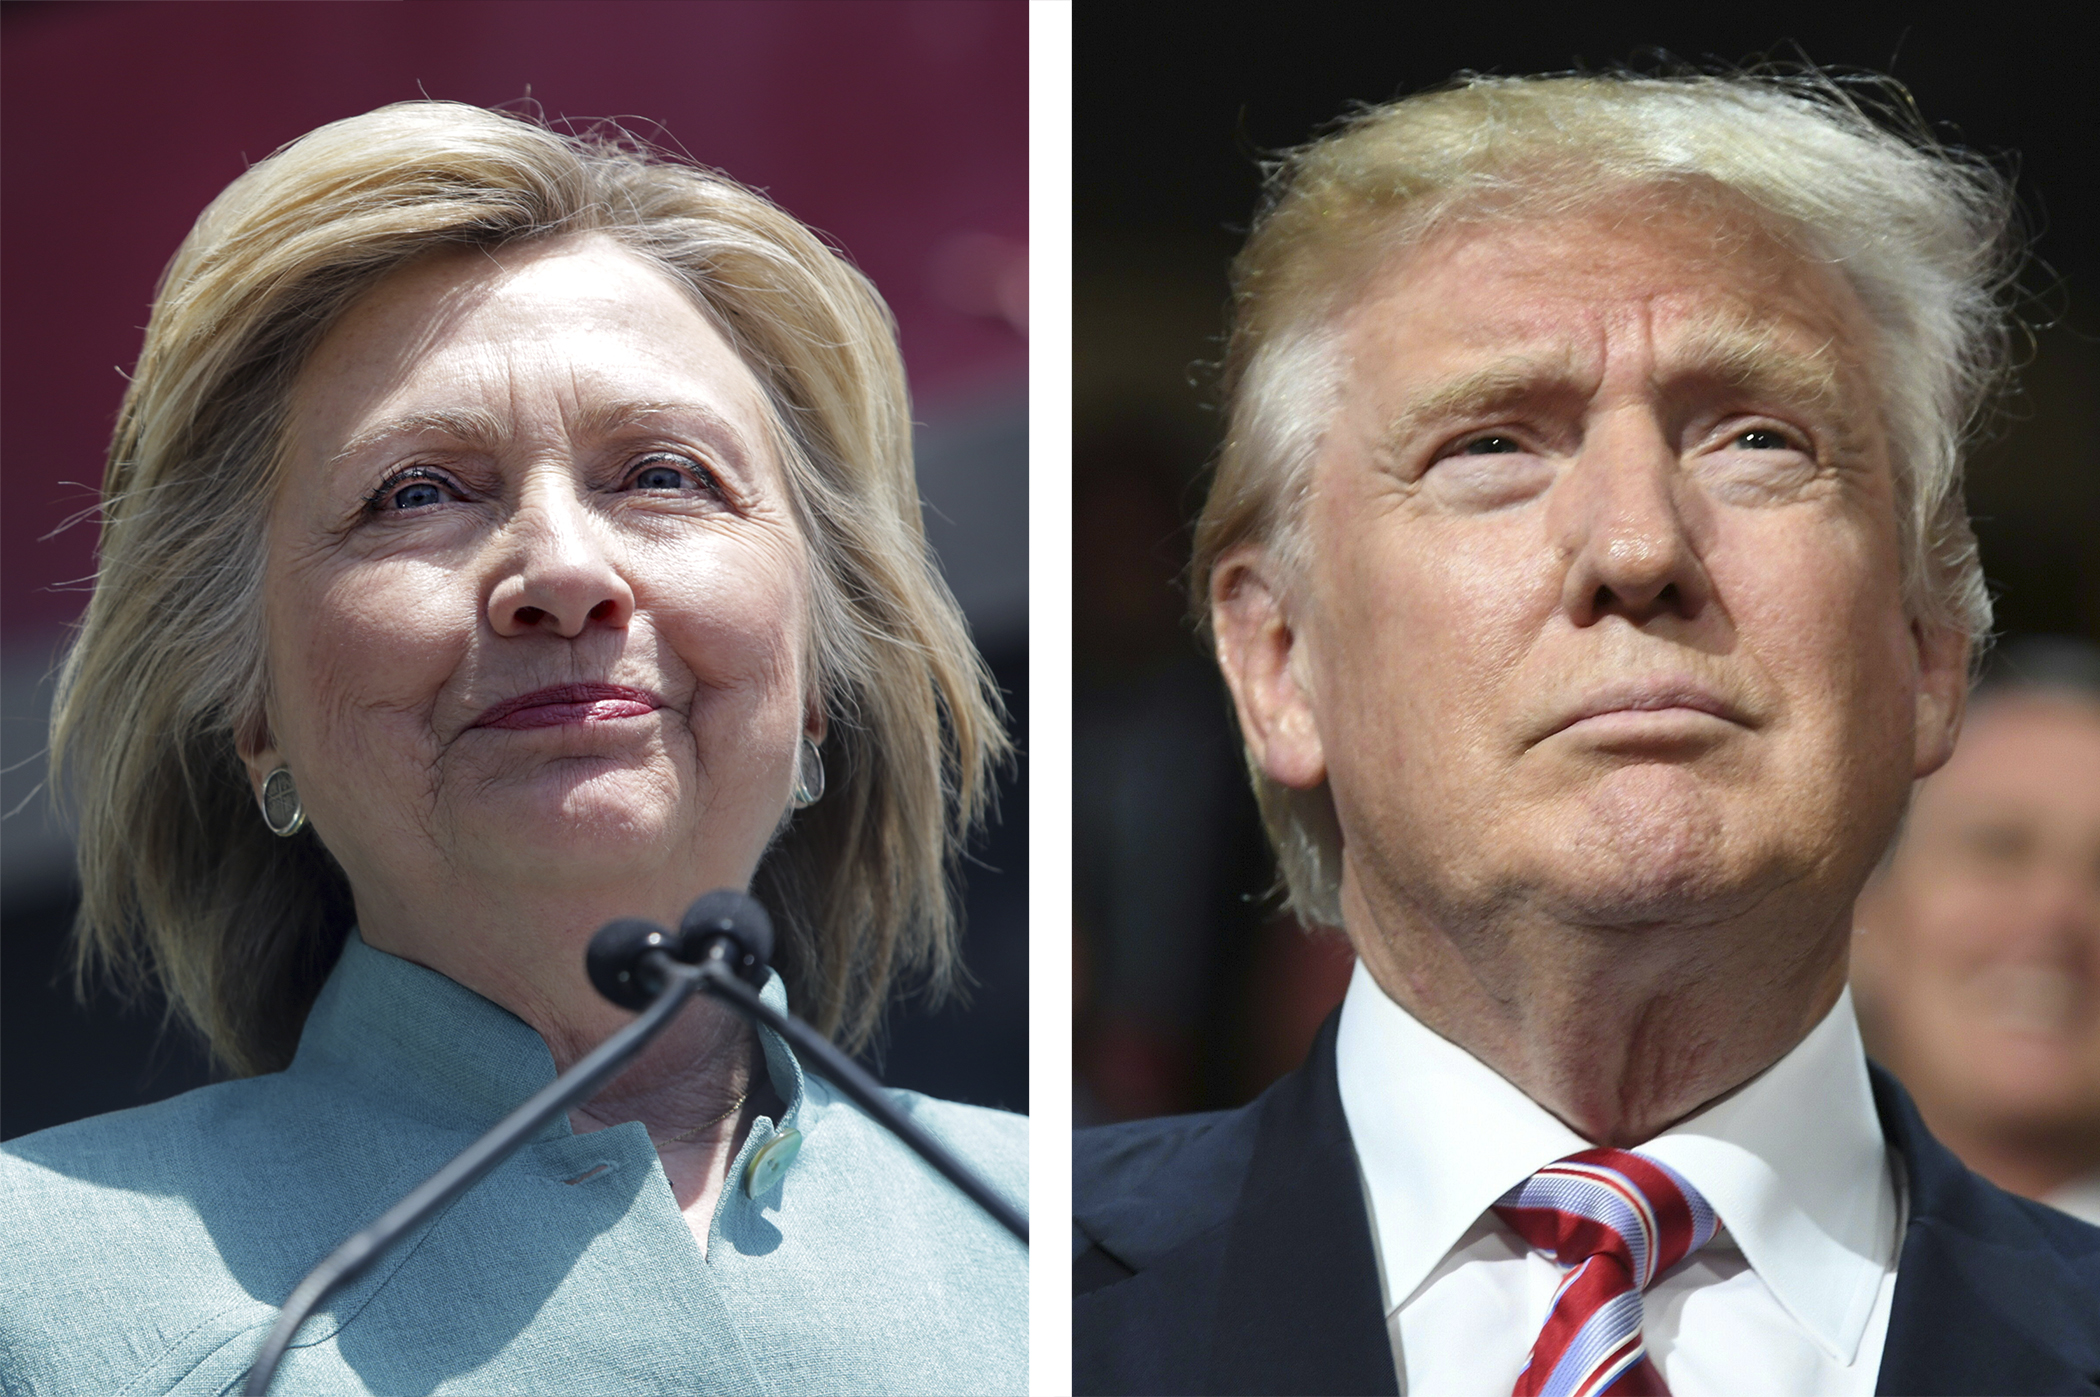 (left) Democratic Presidential candidate Hillary Clinton; (right) Republican Presidential candidate Donald Trump